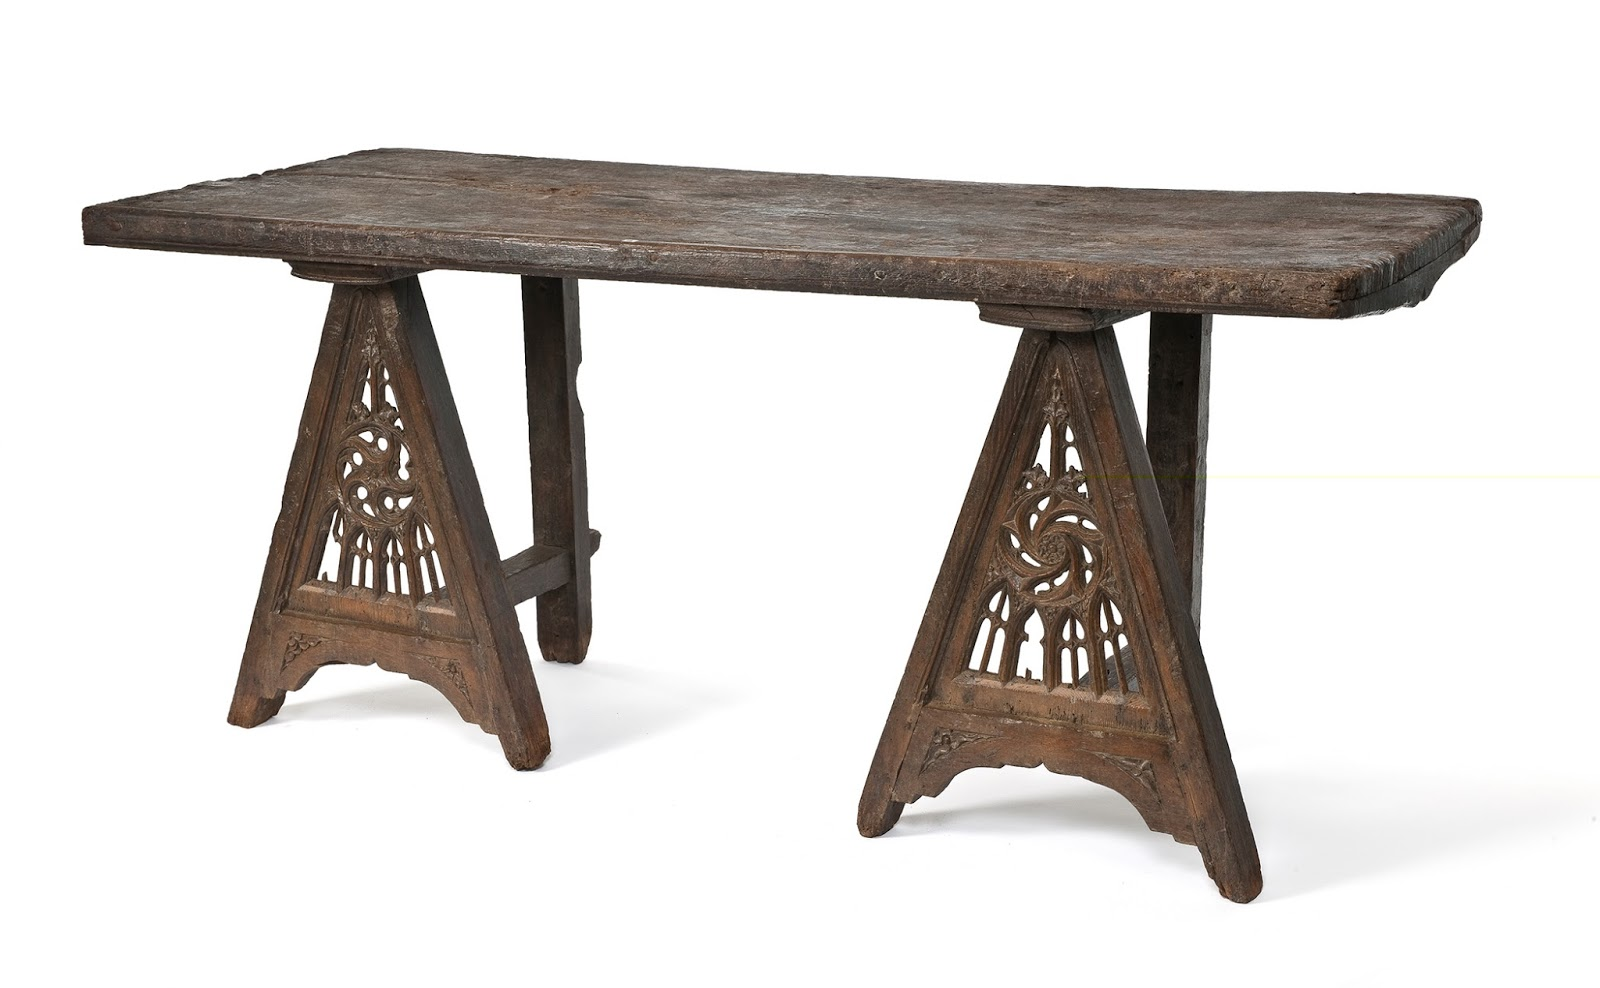 The Trestle Table As Found In The Medieval Bedroom In The Musee Des Arts  Decoratifs, Paris. While The Two Trestles Look Similar, There Is Some  Subtle ...